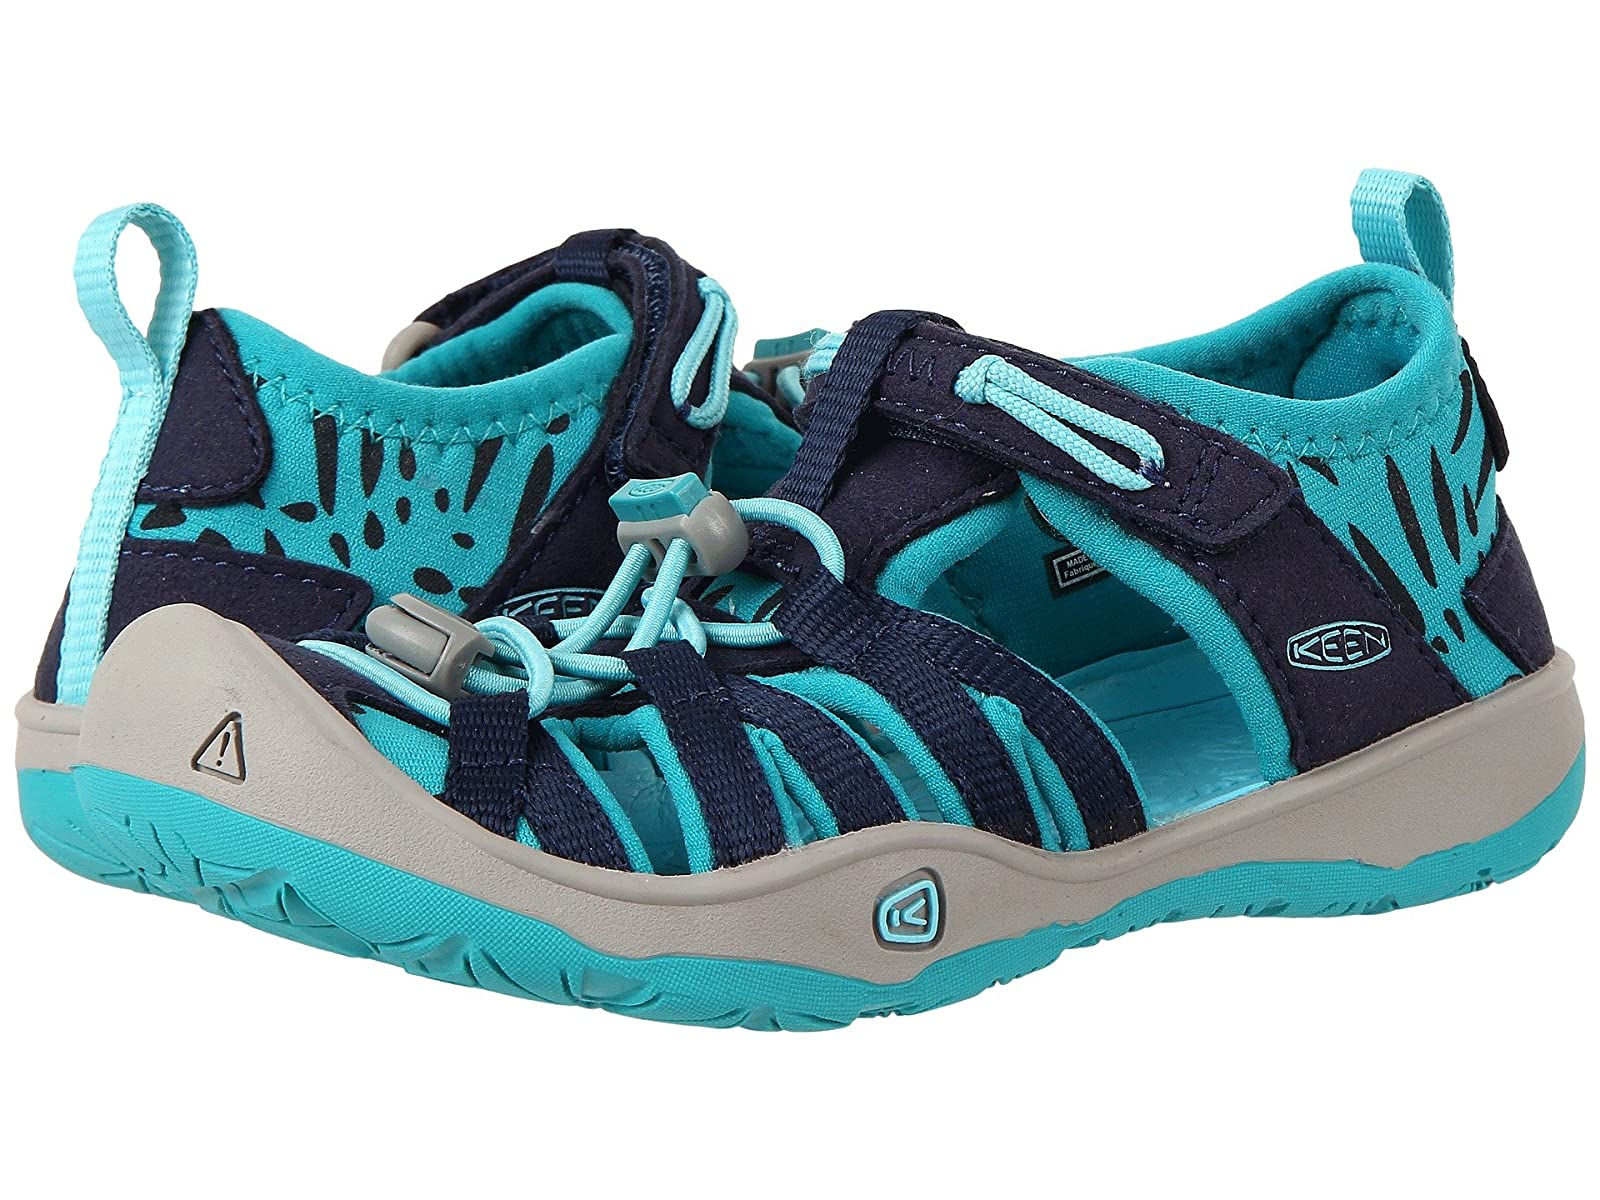 Keen Kids Moxie Sandal (Toddler/Little Name:Mr/Ms Kid):International Big Name:Mr/Ms (Toddler/Little bcba1a